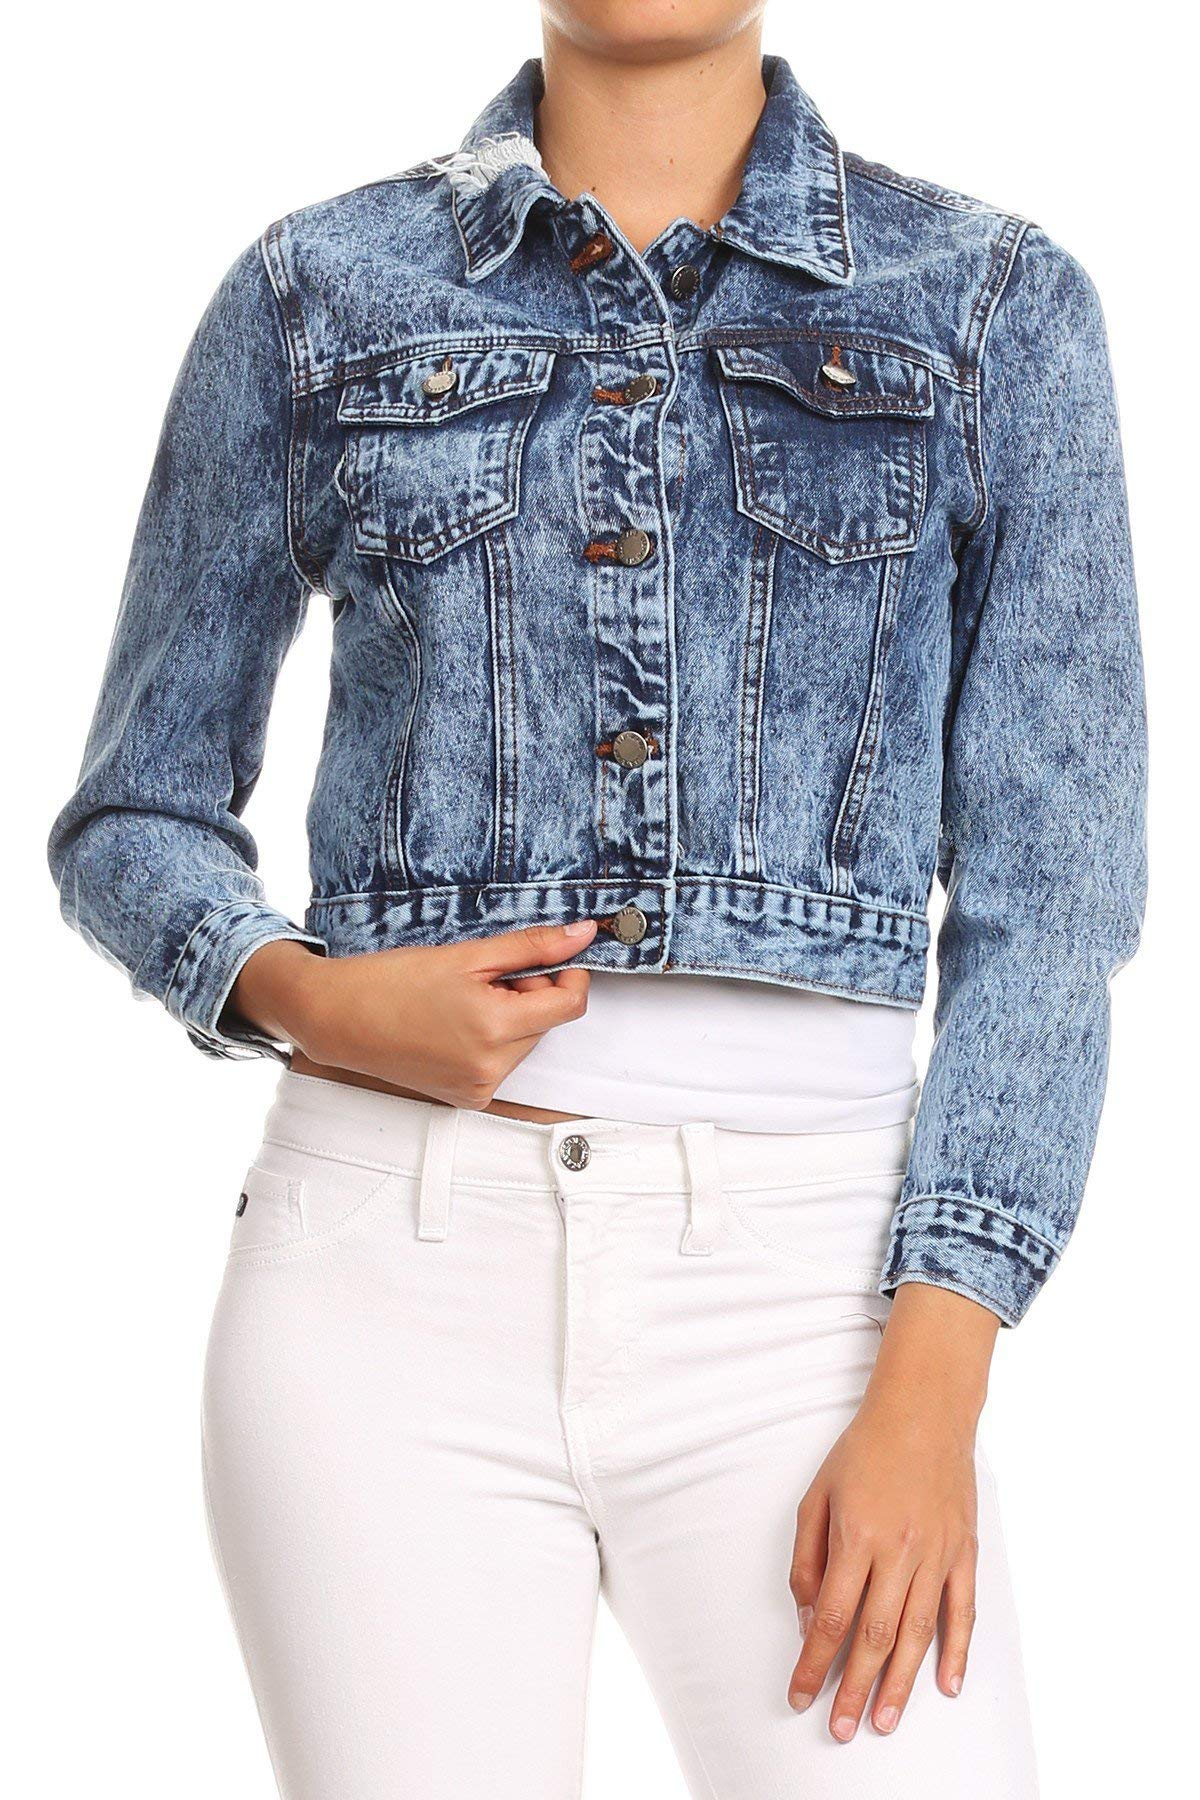 Women's Premium Denim Jackets Long Sleeve Ripped Jean Coats in Washed Blue Size M